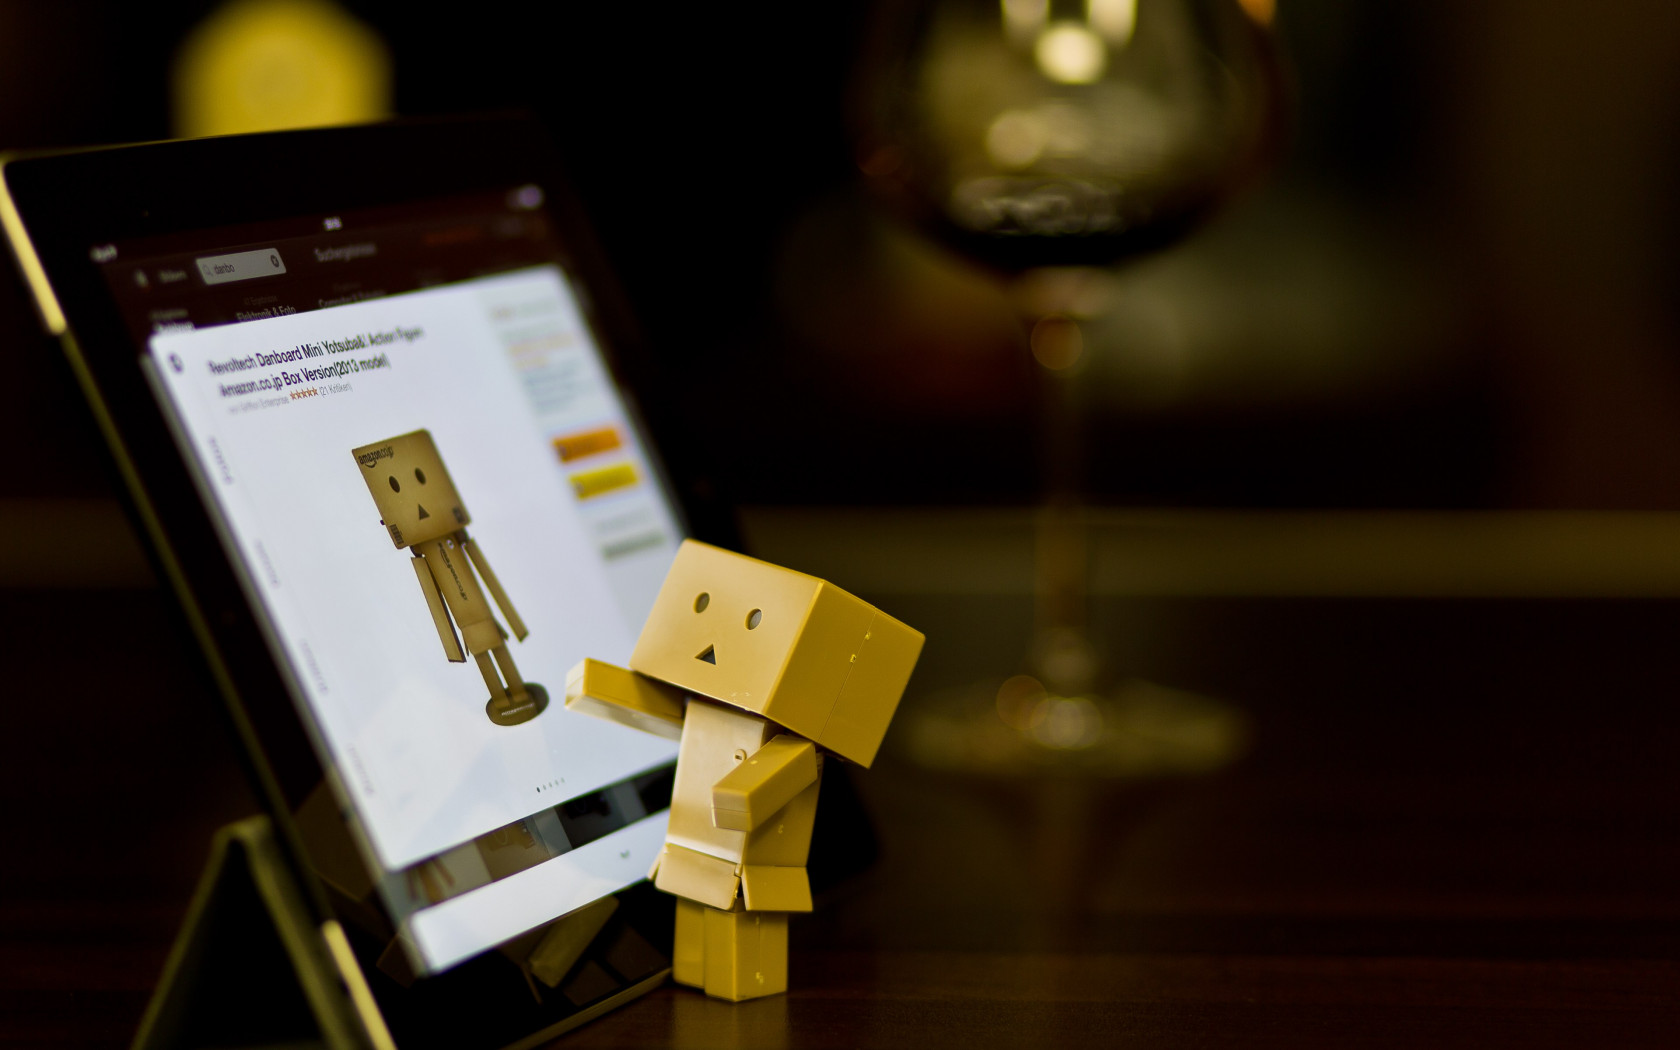 Danbo with tablet wallpaper 1680x1050